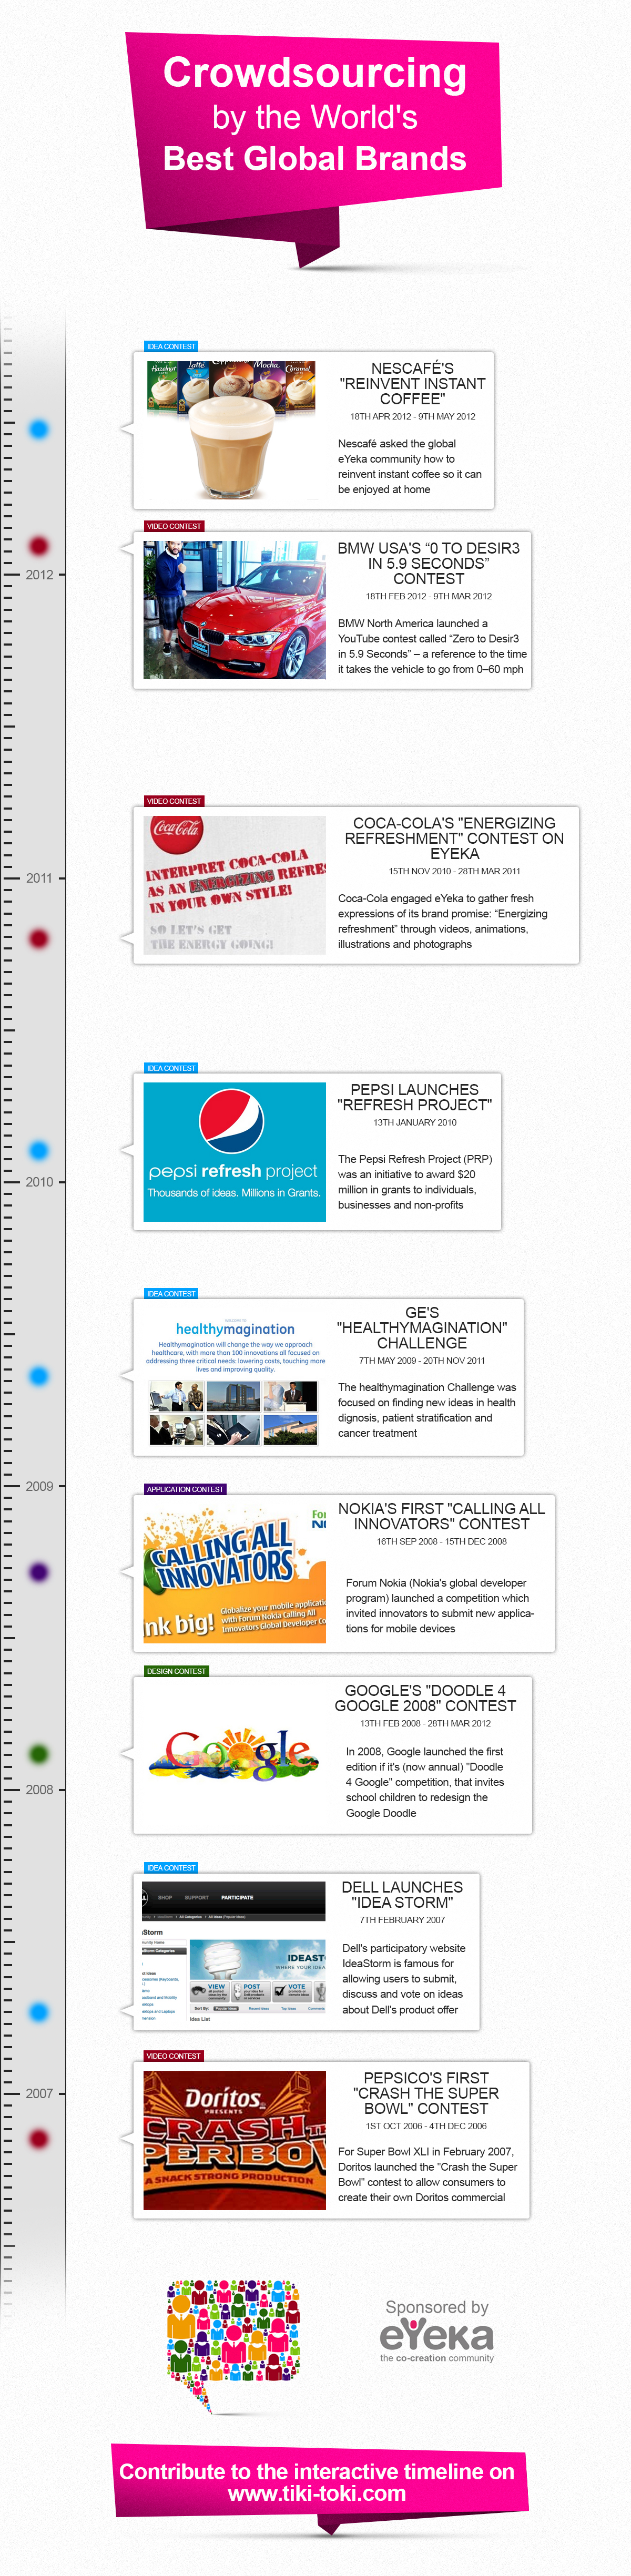 8d Crowdsourcing By The Best Global Brands Infographic Marketing Interactive Timeline Content Marketing Infographic